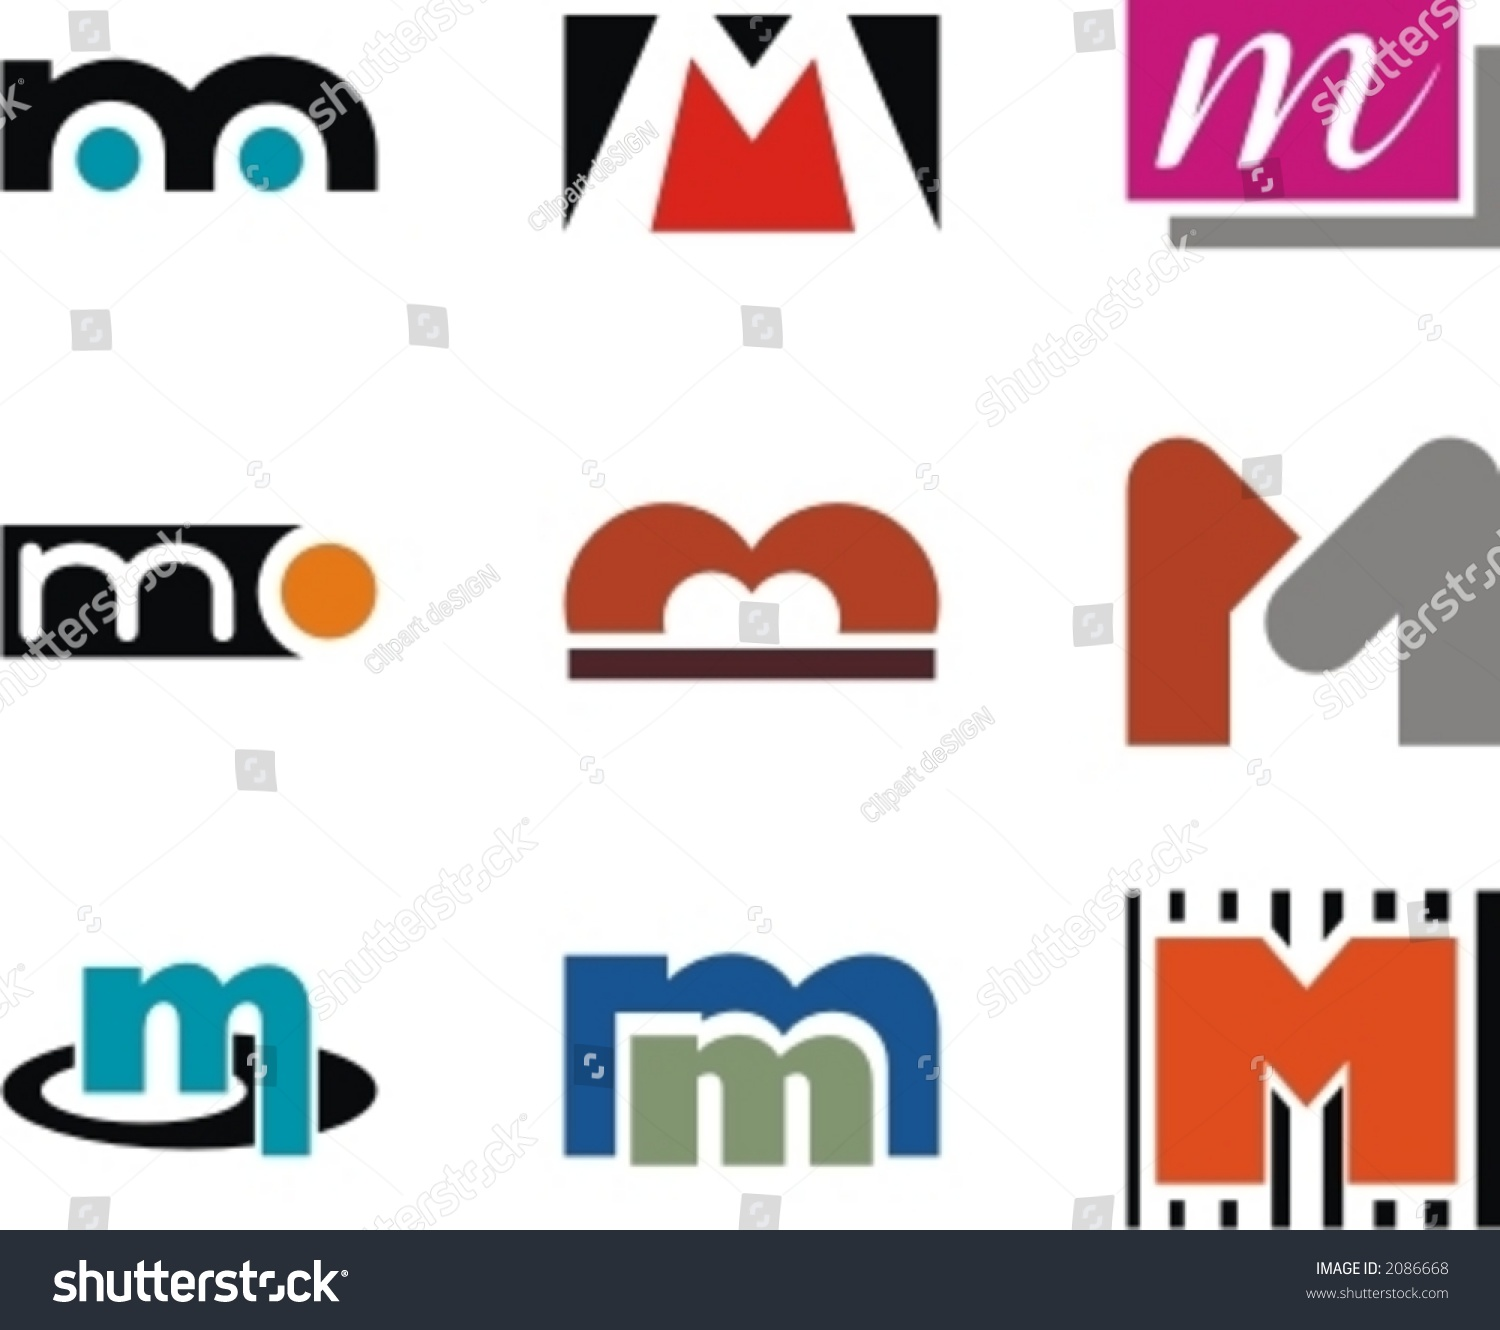 alphabetical logo design concepts letter m stock vector  alphabetical logo design concepts letter m check my portfolio for more of this series